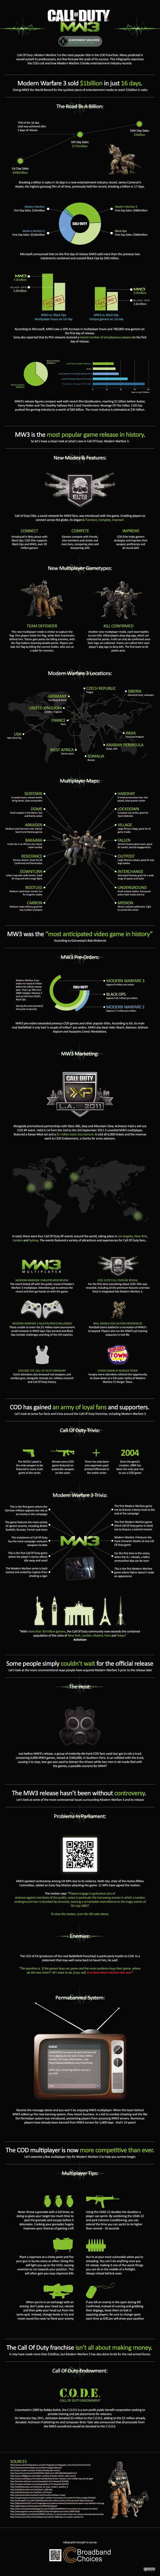 The Most Popular Game Release in History! Call of Duty: Modern Warfare 3 Infographic. Created by http://www.broadbandchoices.co.uk in partnership with http://www.inmotiongaming.com.